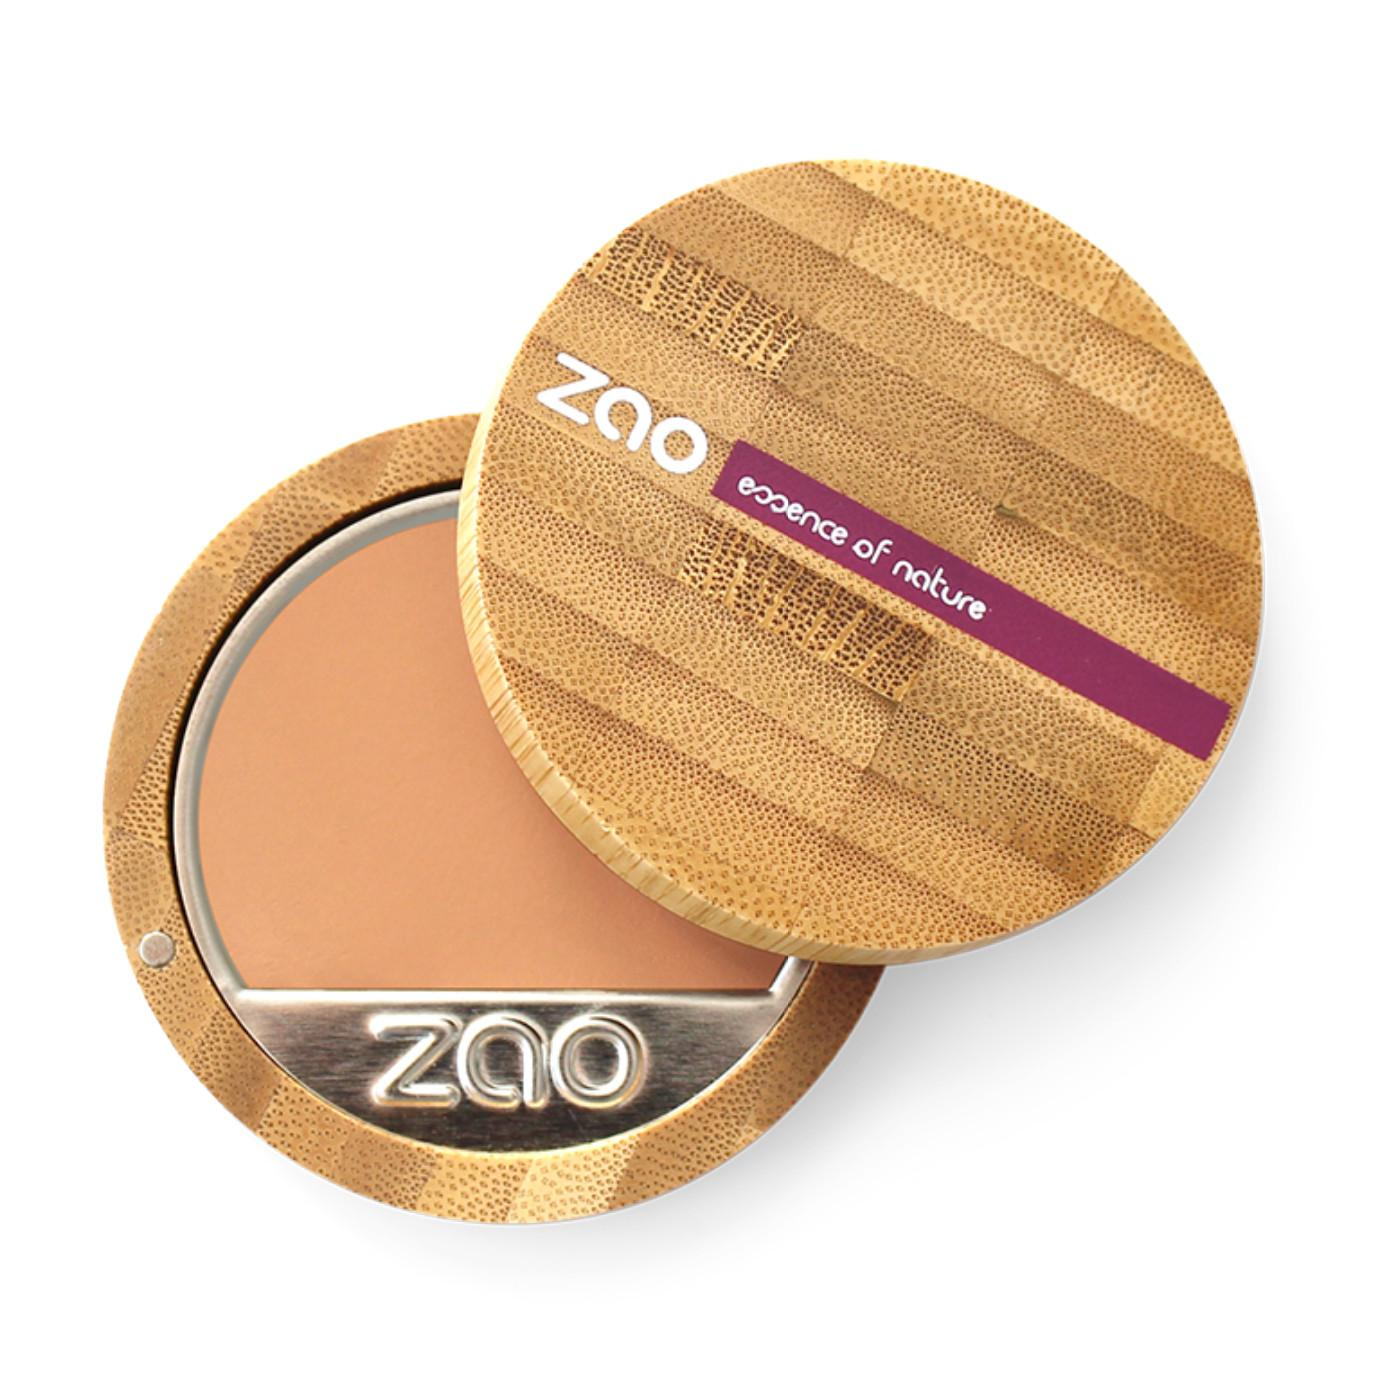 ZAO Kompaktní make-up 733 Neutral 6 g bambusový obal